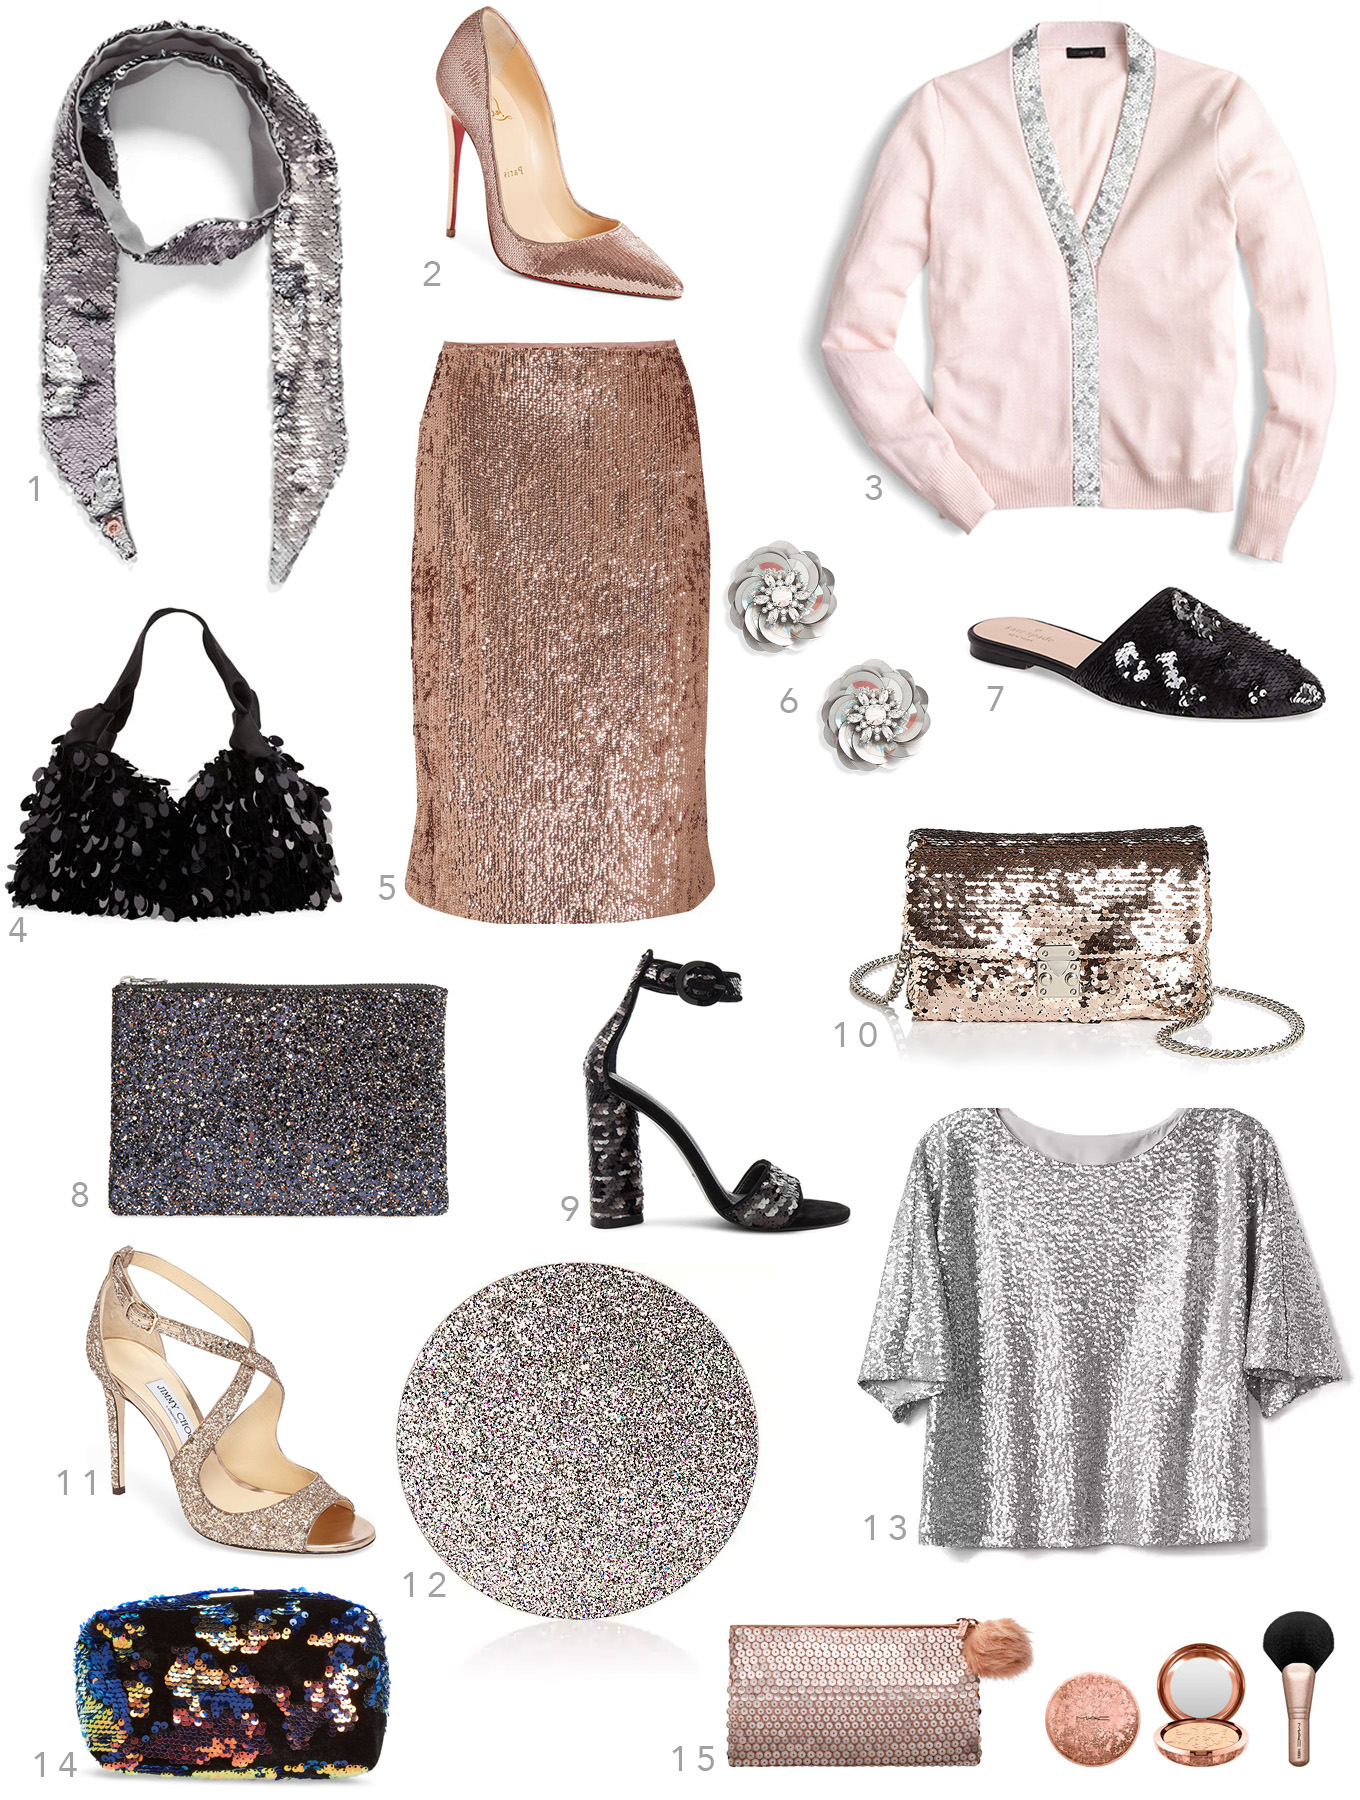 Ridgely Brode adds some shimmer to her holidays with sequins and festive pieces, she shares her finds on her blog, Ridgely's Radar.